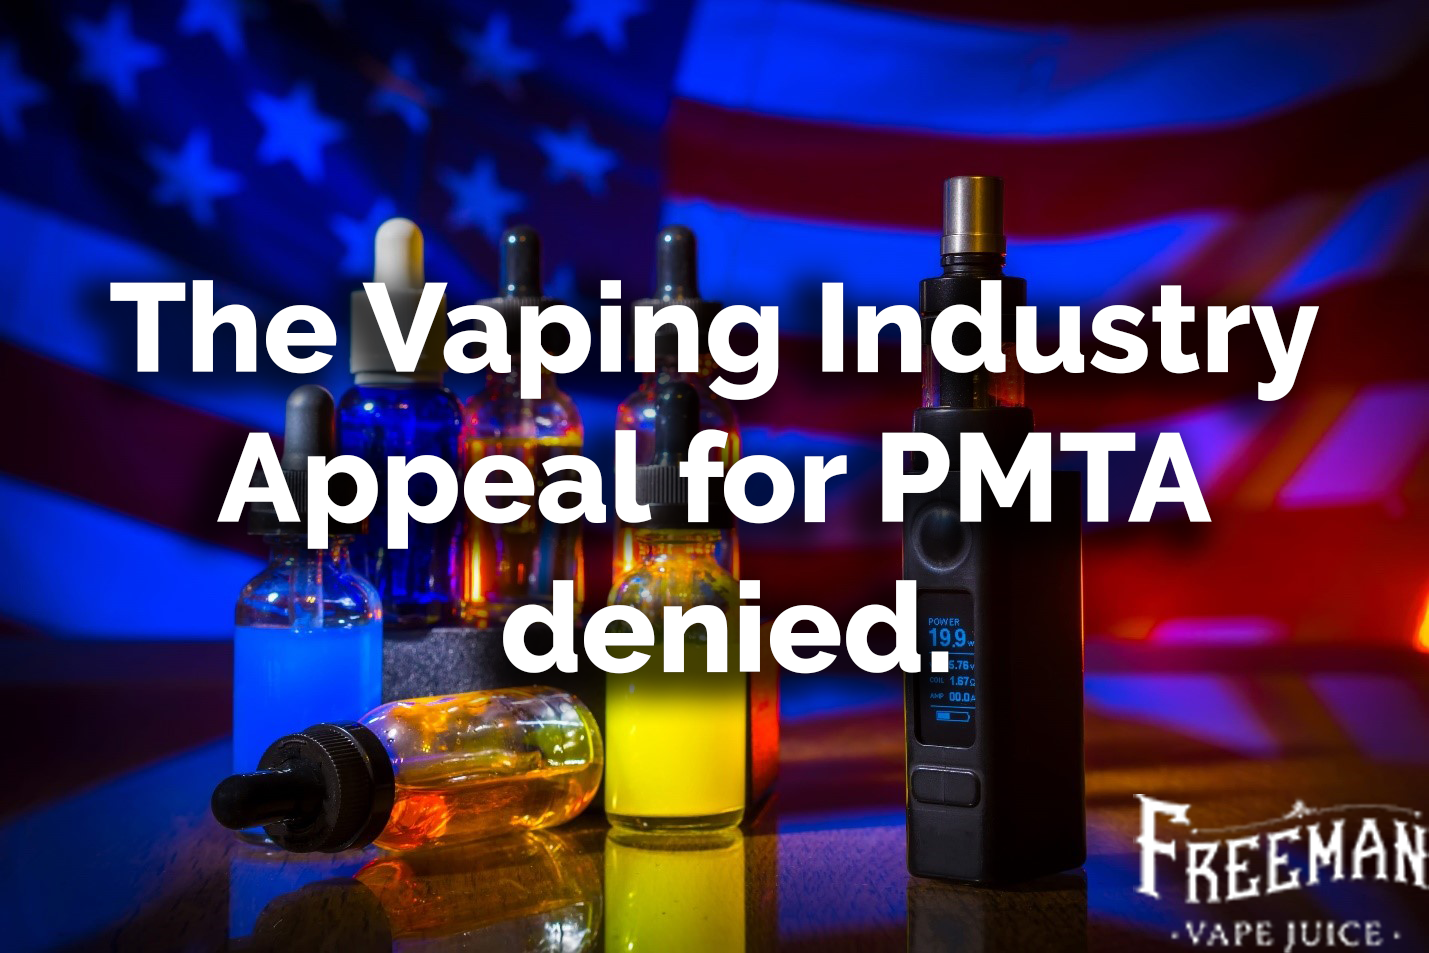 The Vaping Industry Appeal for PMTA denied